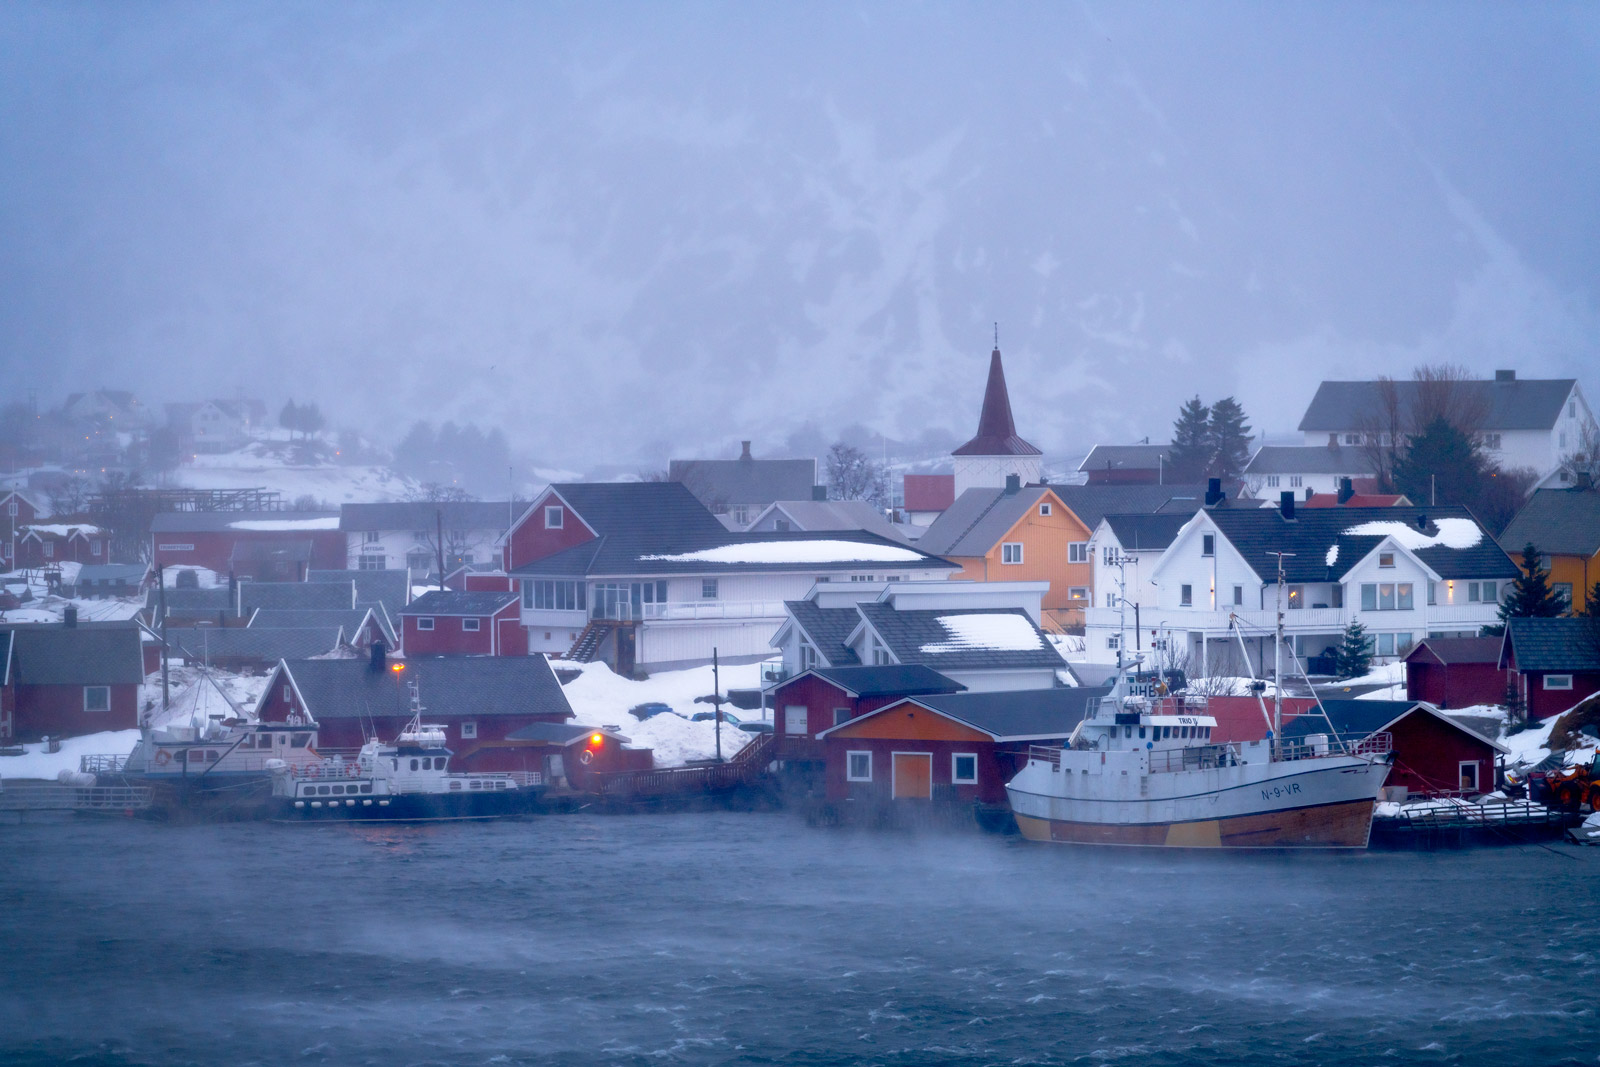 Norway, Reine, Harbor, Storm, limited edition, photograph, photo